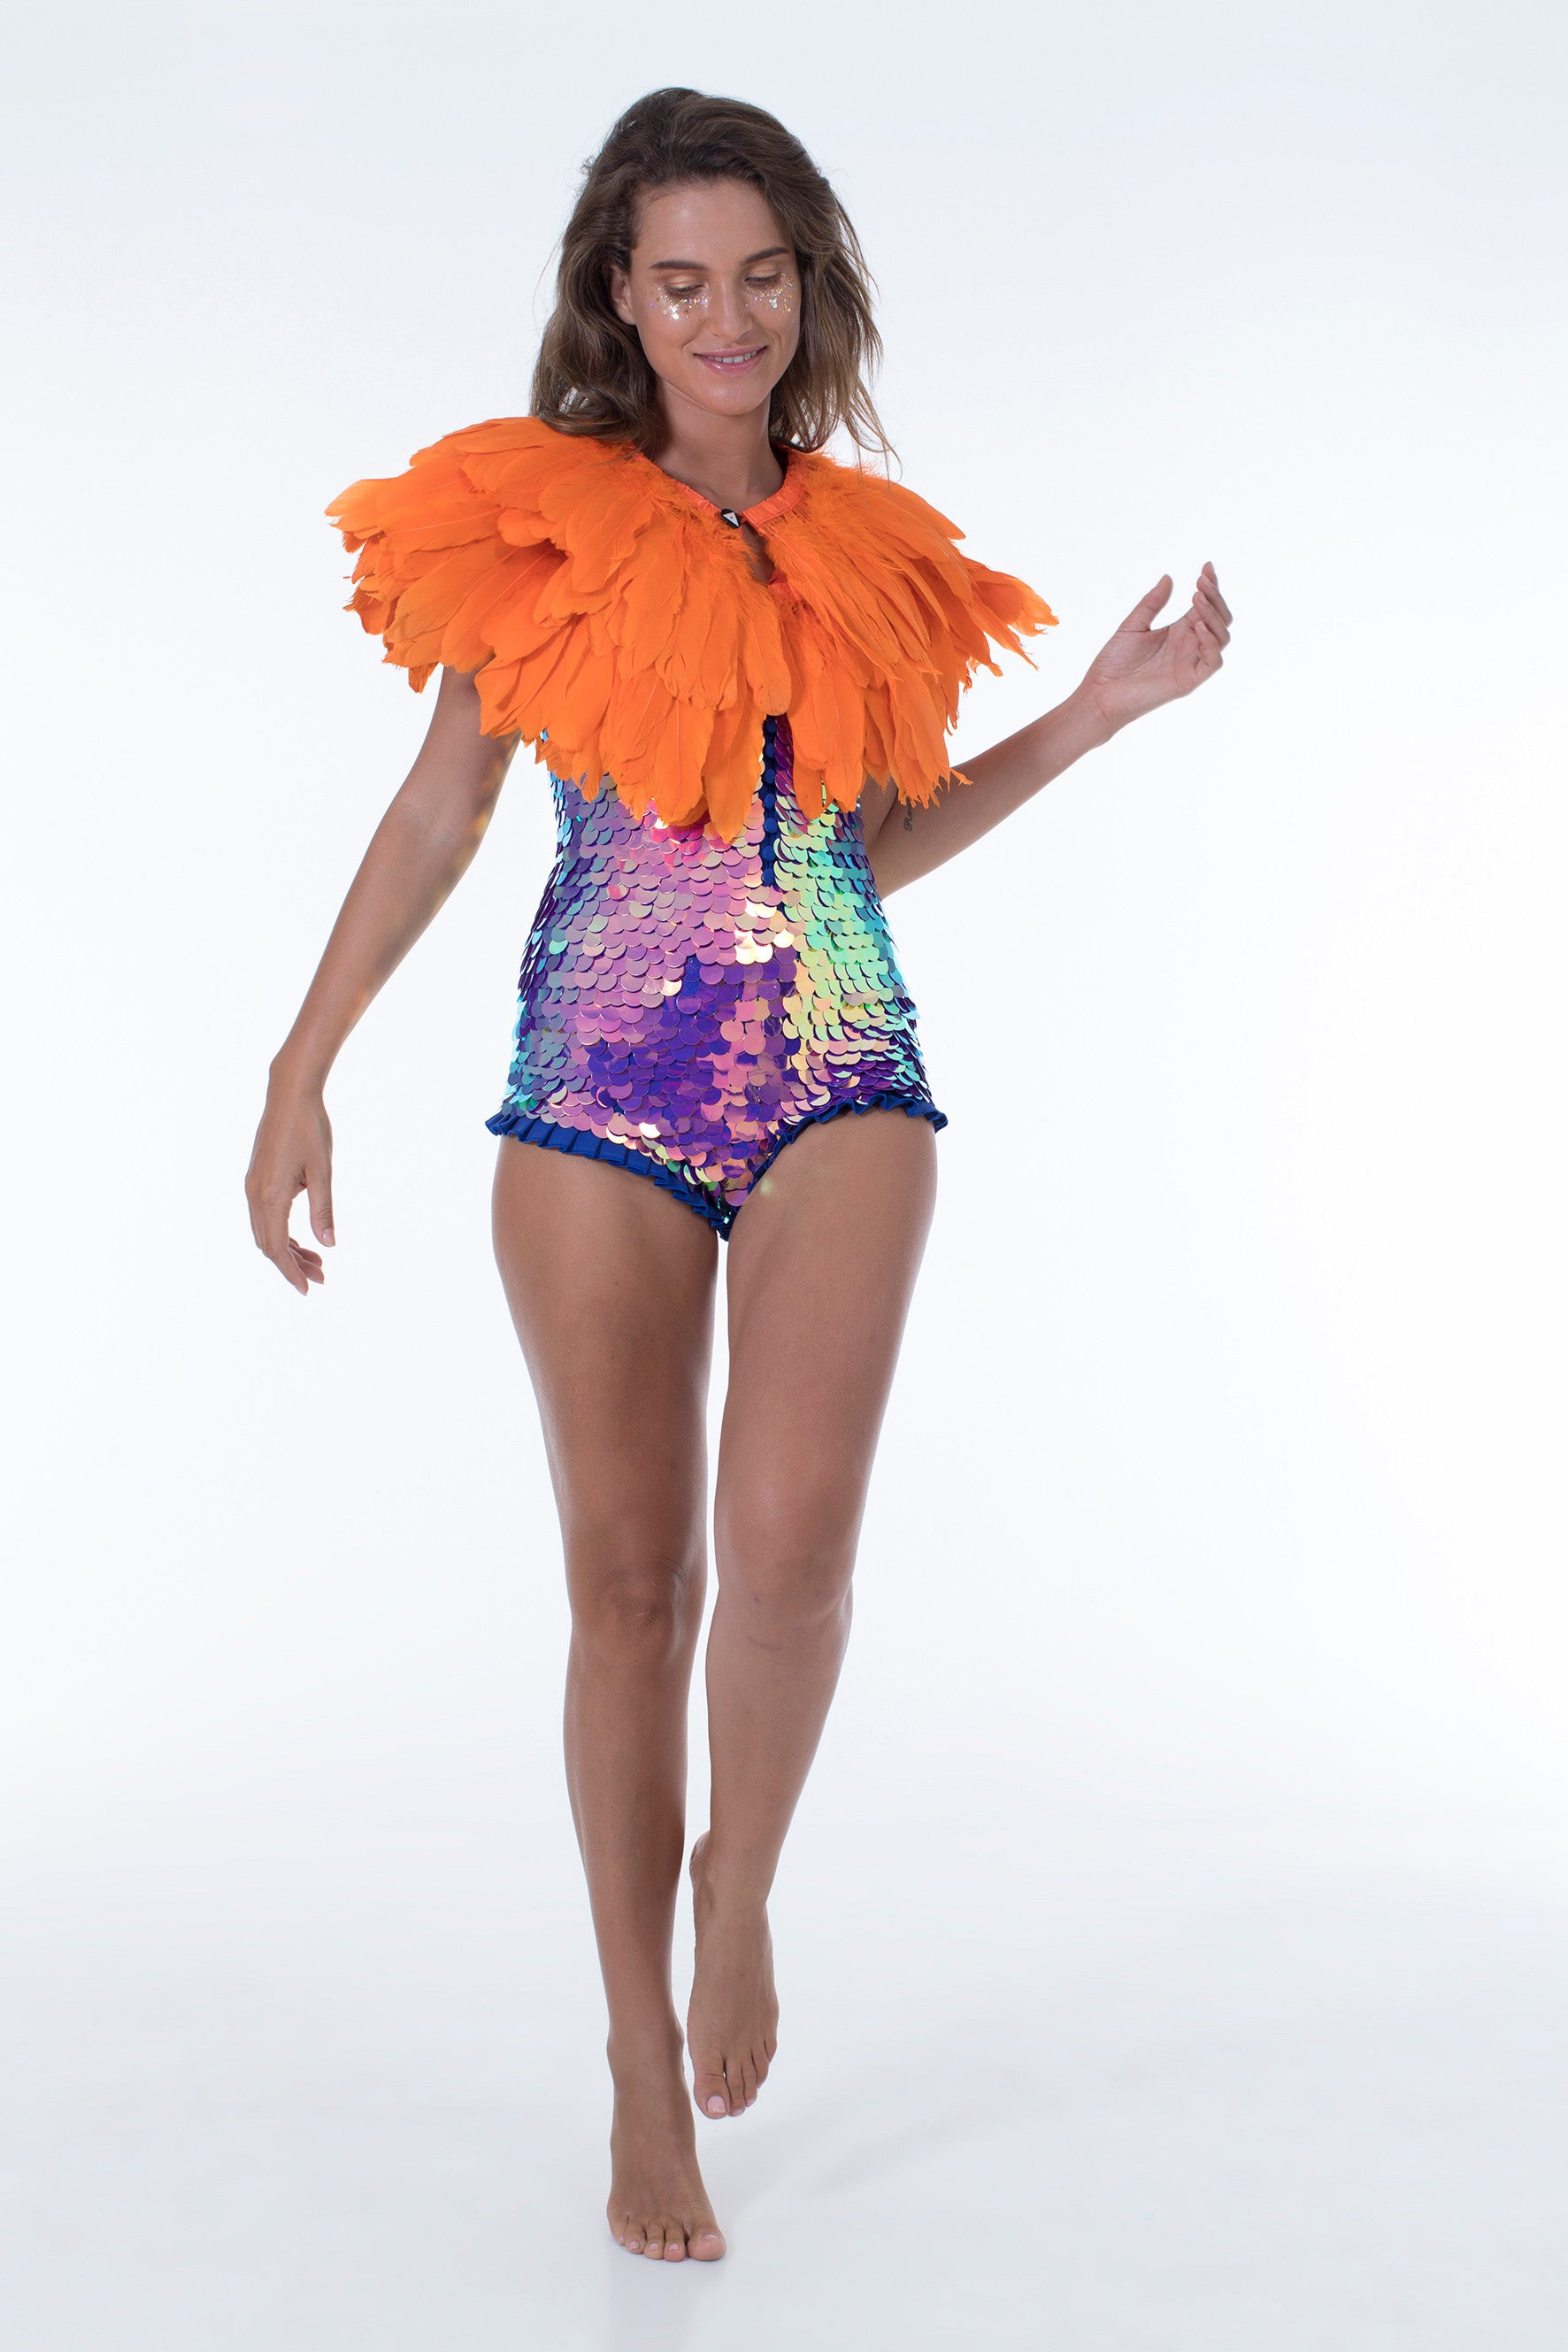 juicy orange feather cape